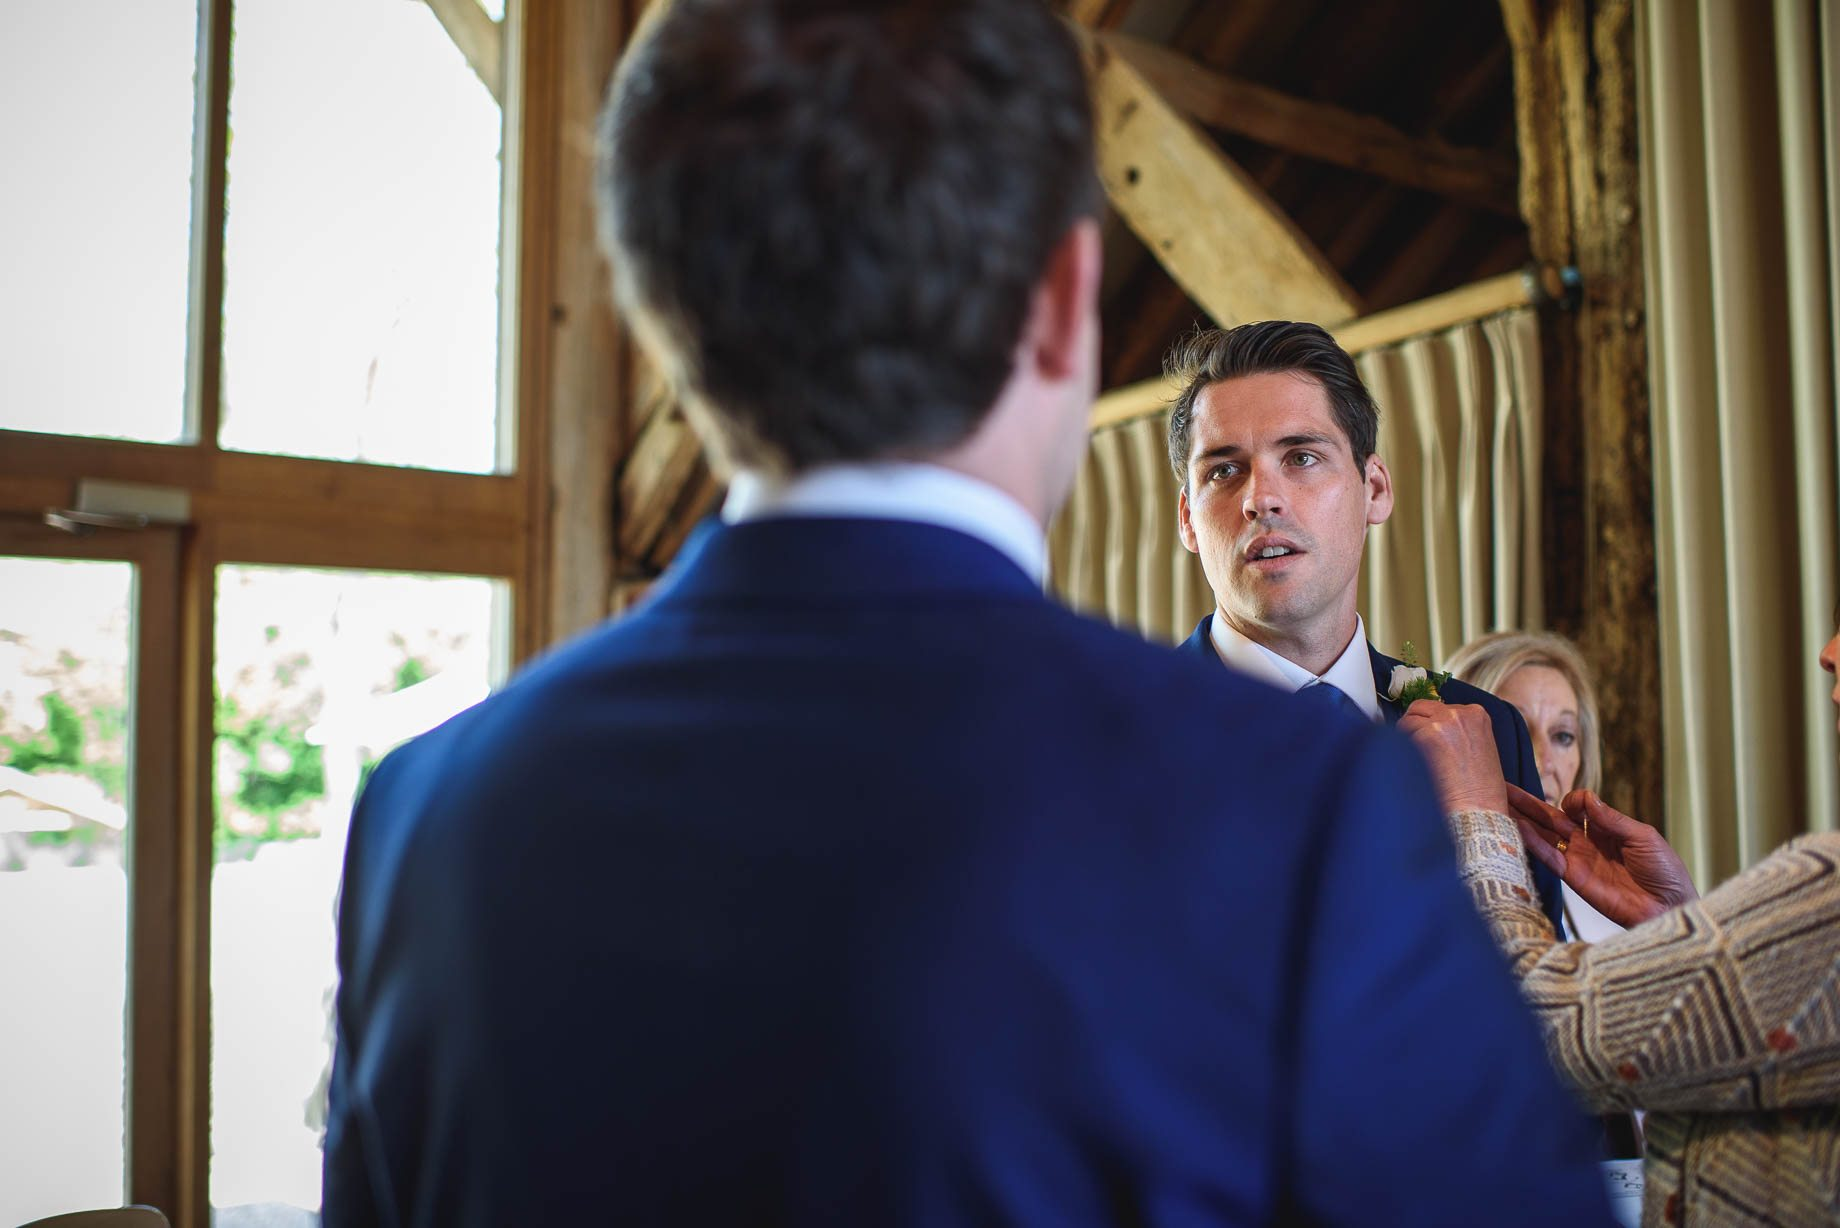 Bury Court Barn wedding photography by Guy Collier - Jo and Jamie (24 of 160)